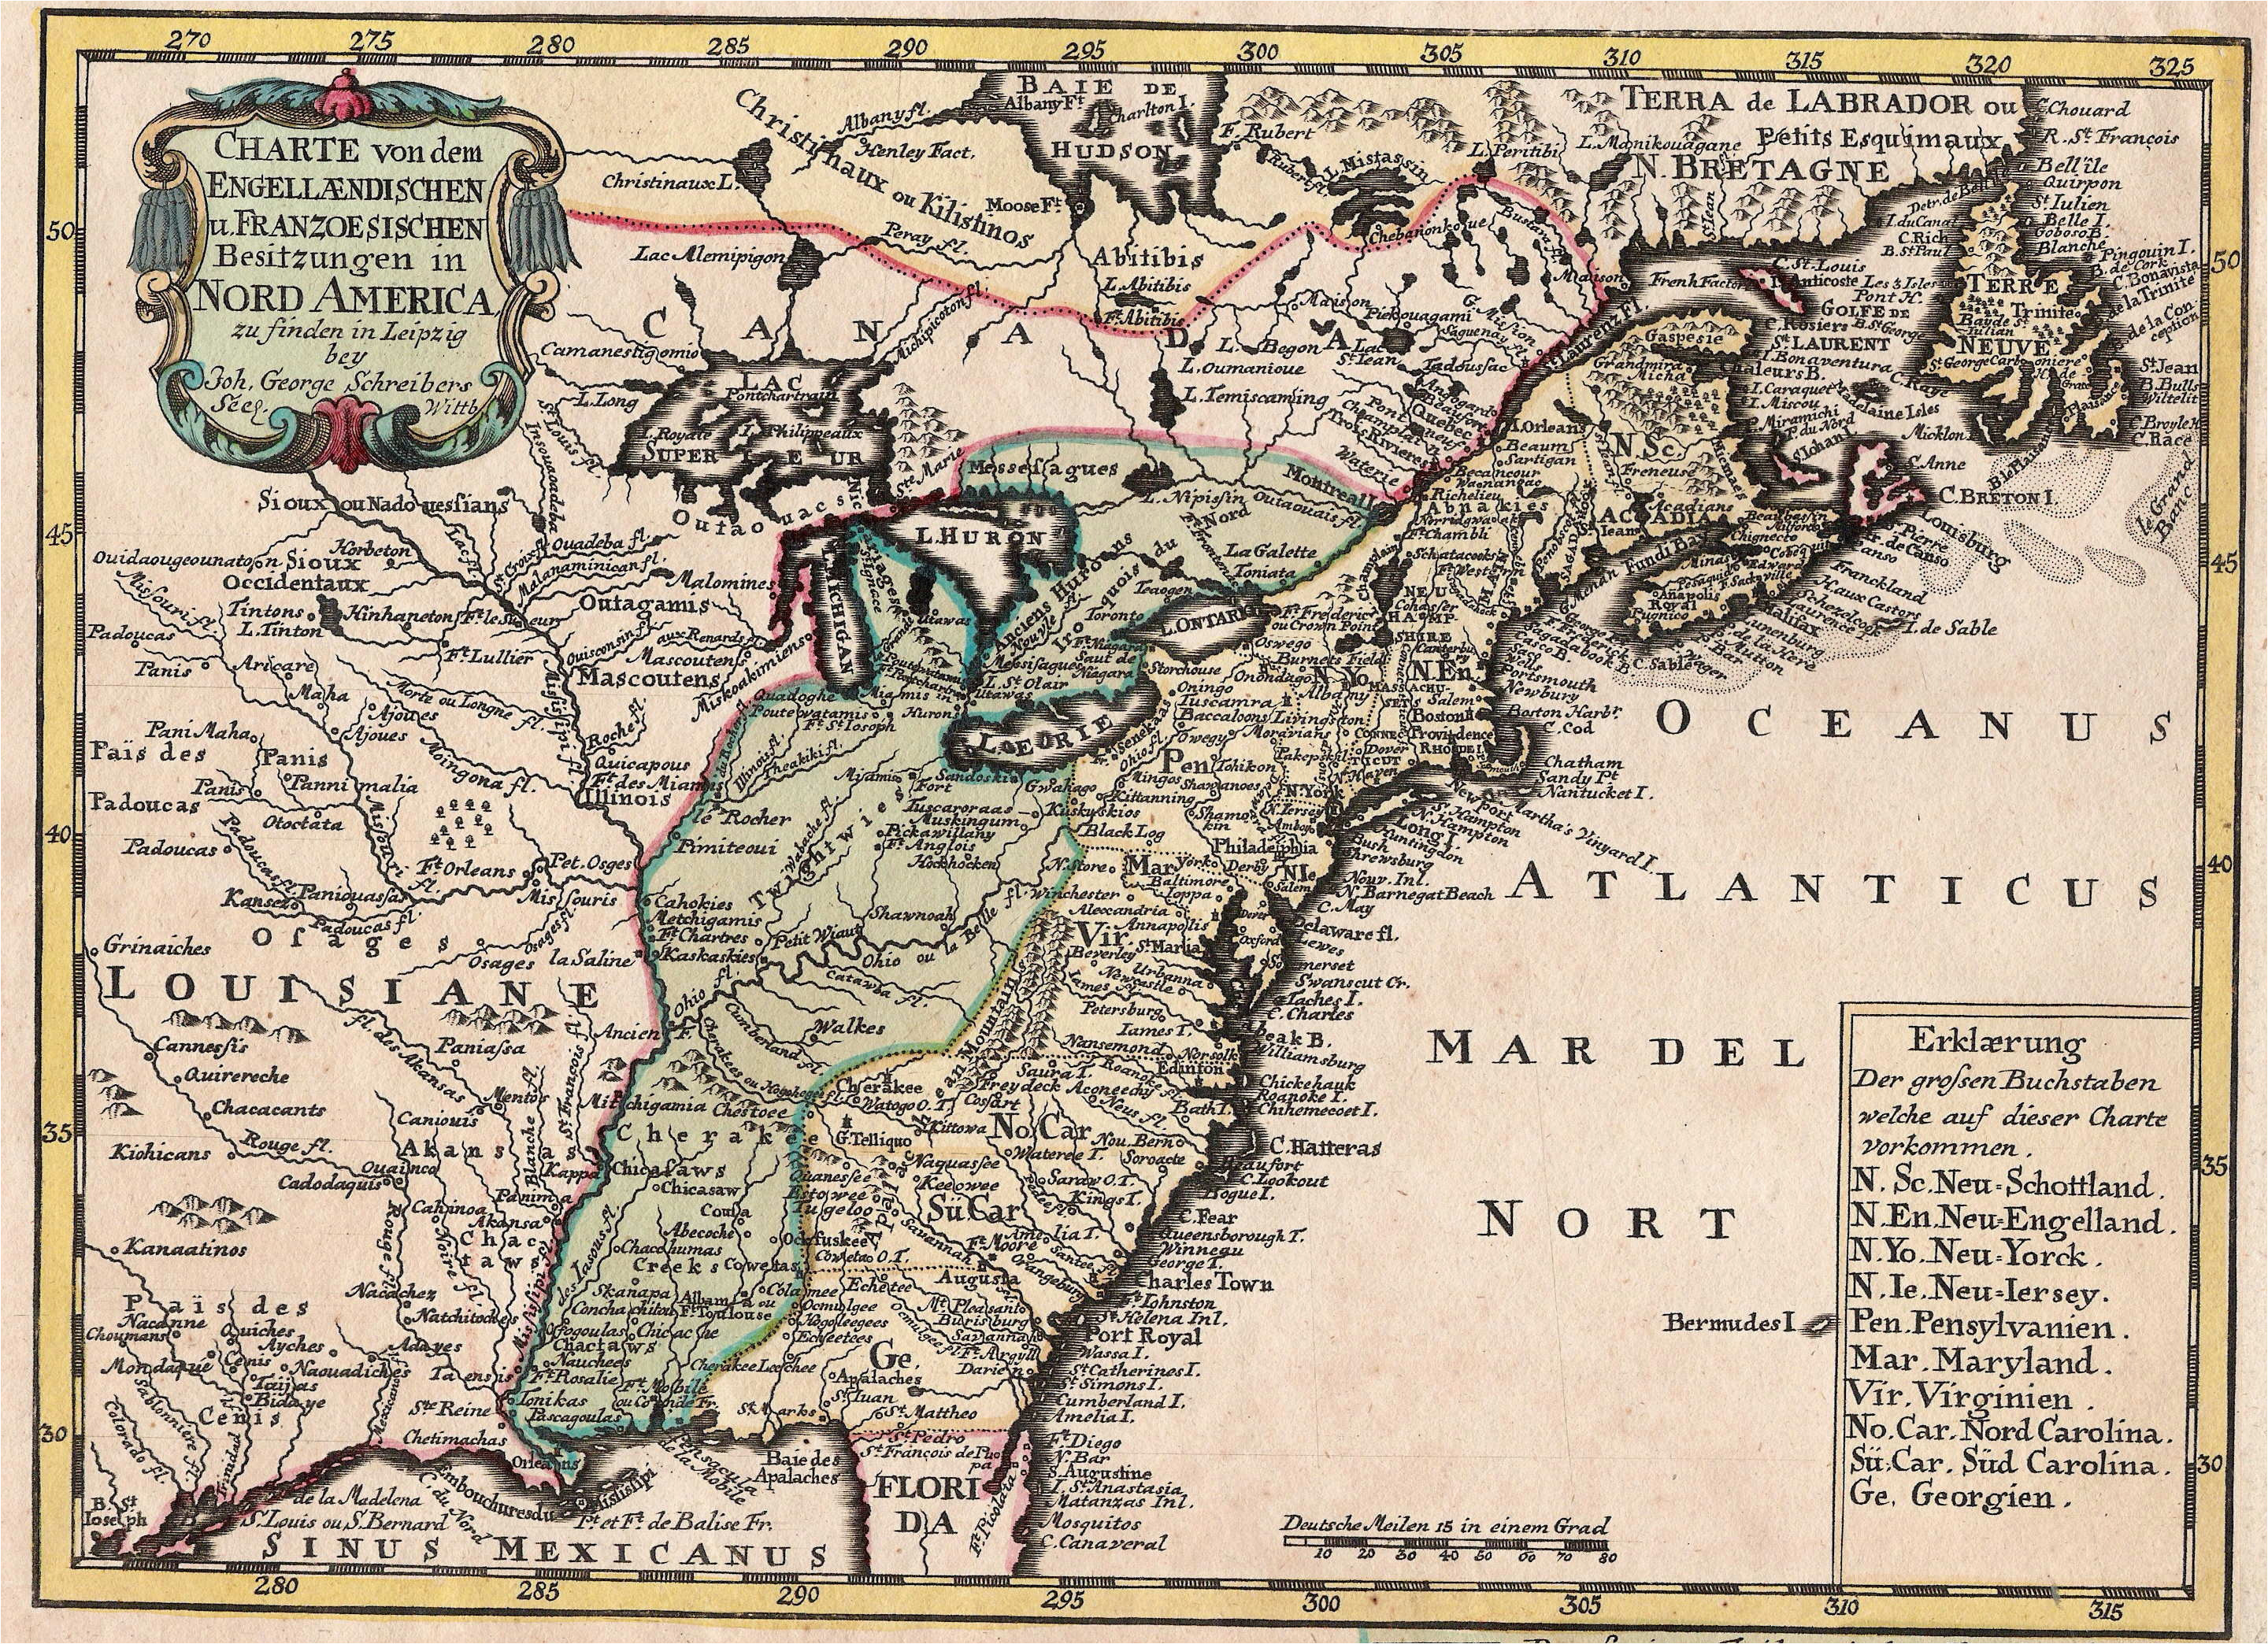 1740 s pennsylvania maps